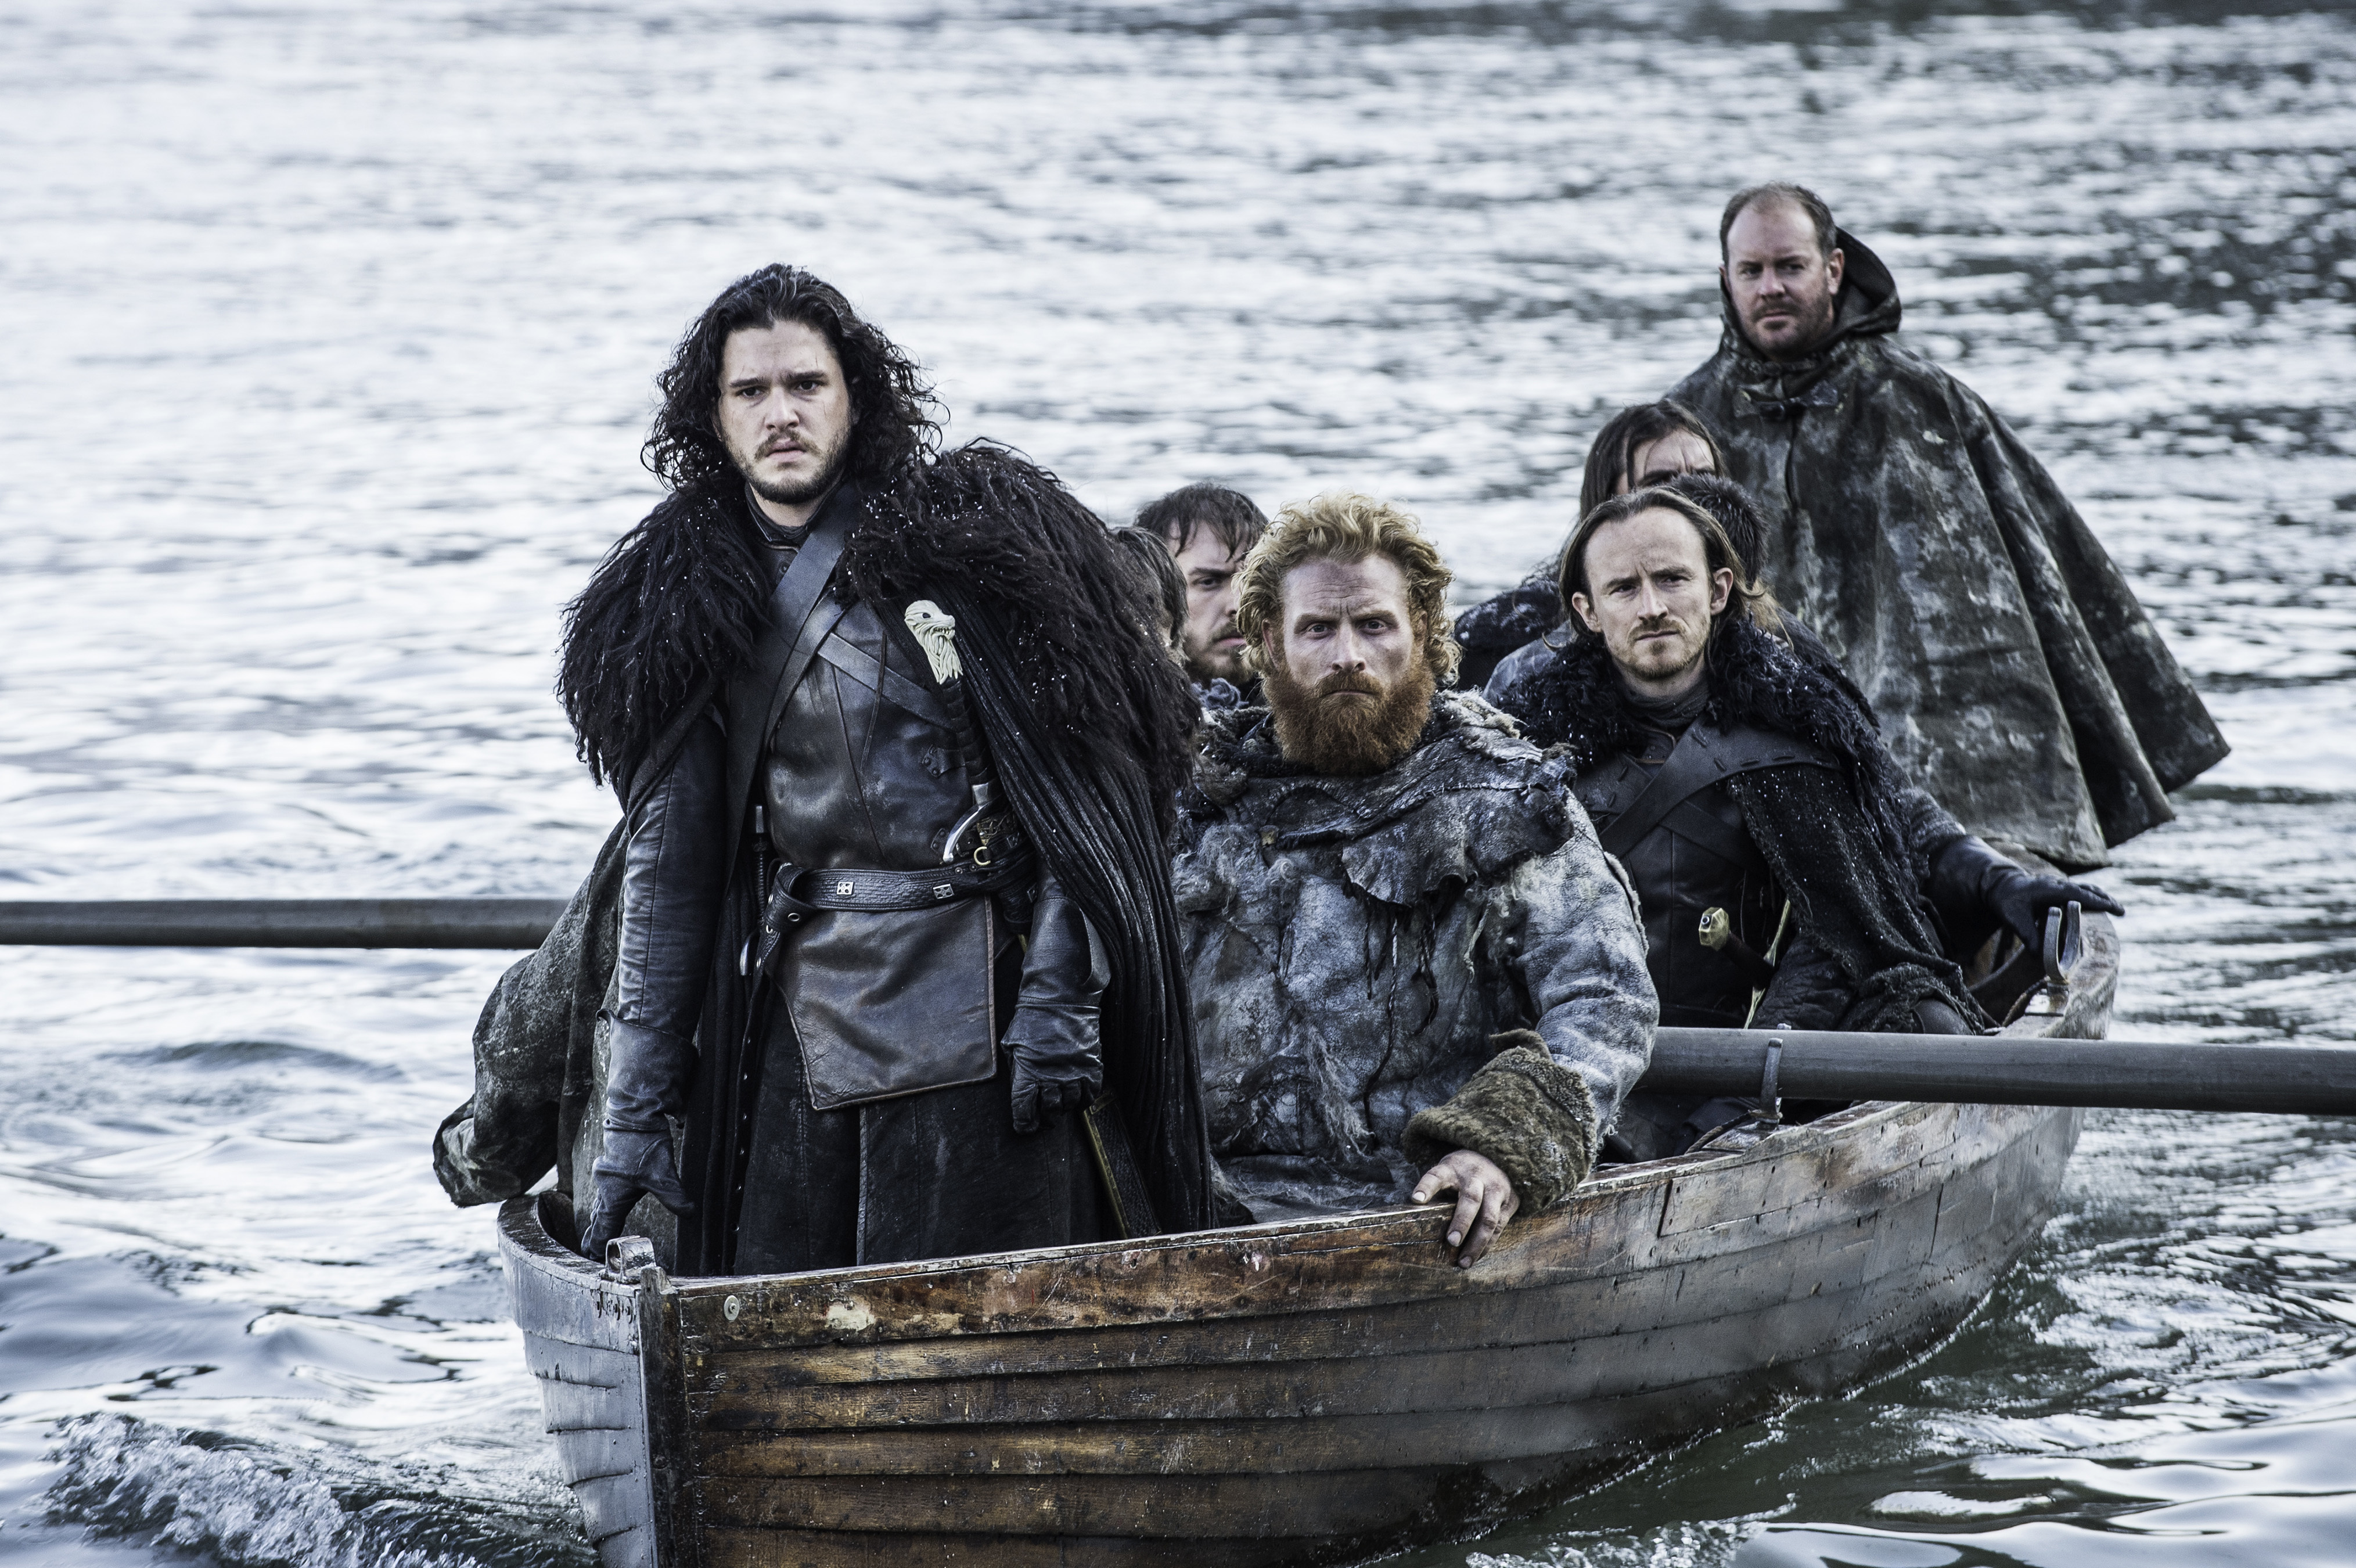 """FILE - This file image released by HBO shows Kit Harington as Jon Snow, left, in a scene from """"Game of Thrones."""" """"Game of Thrones"""" was one of the hottest topics on Facebook in 2015. (Helen Sloan/HBO via AP, File) 